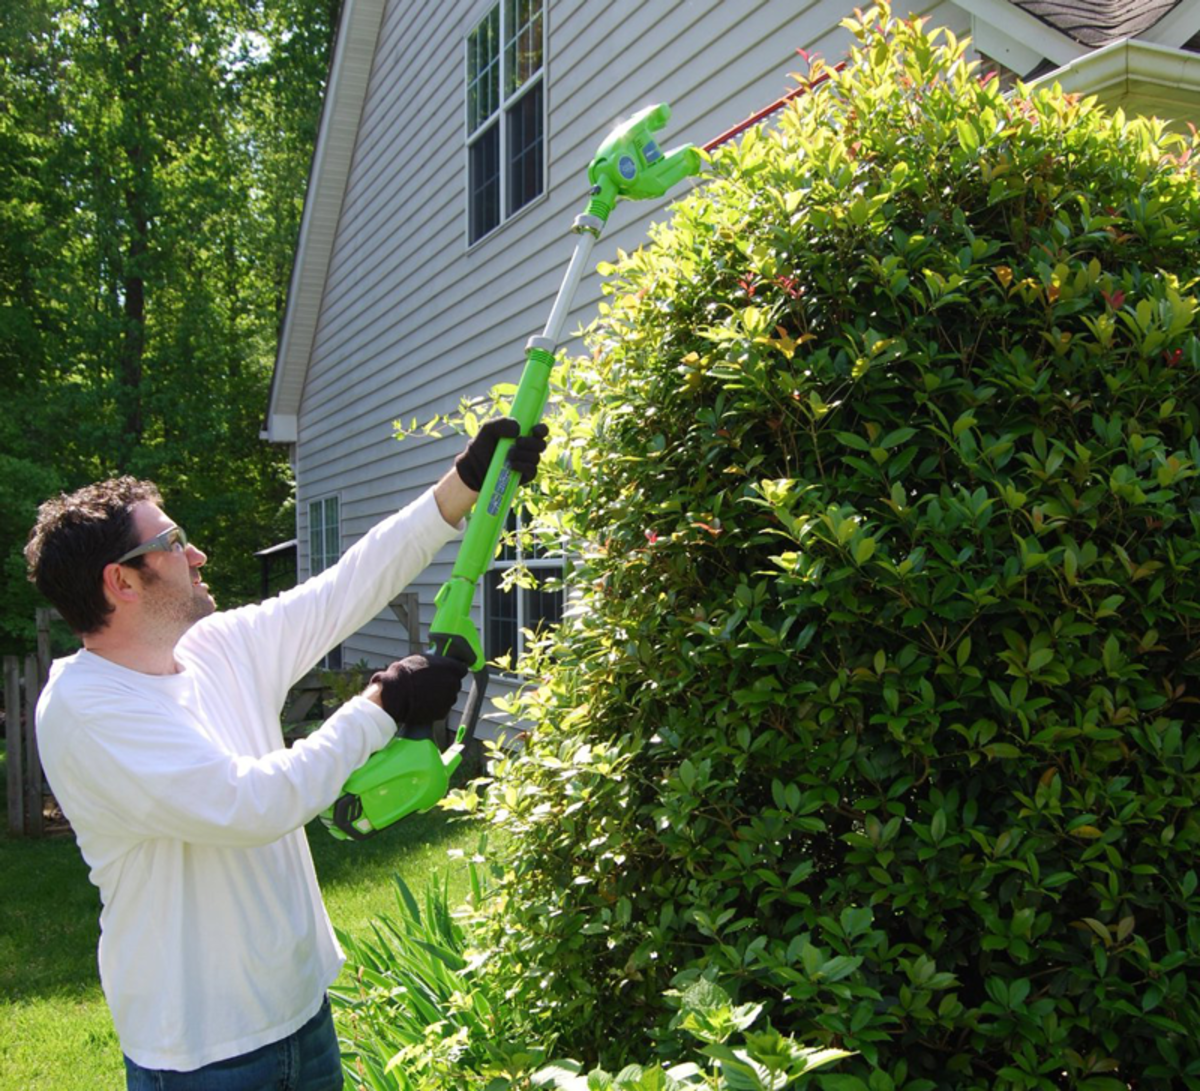 The GreenWorks cordless can tackle tall hedges.